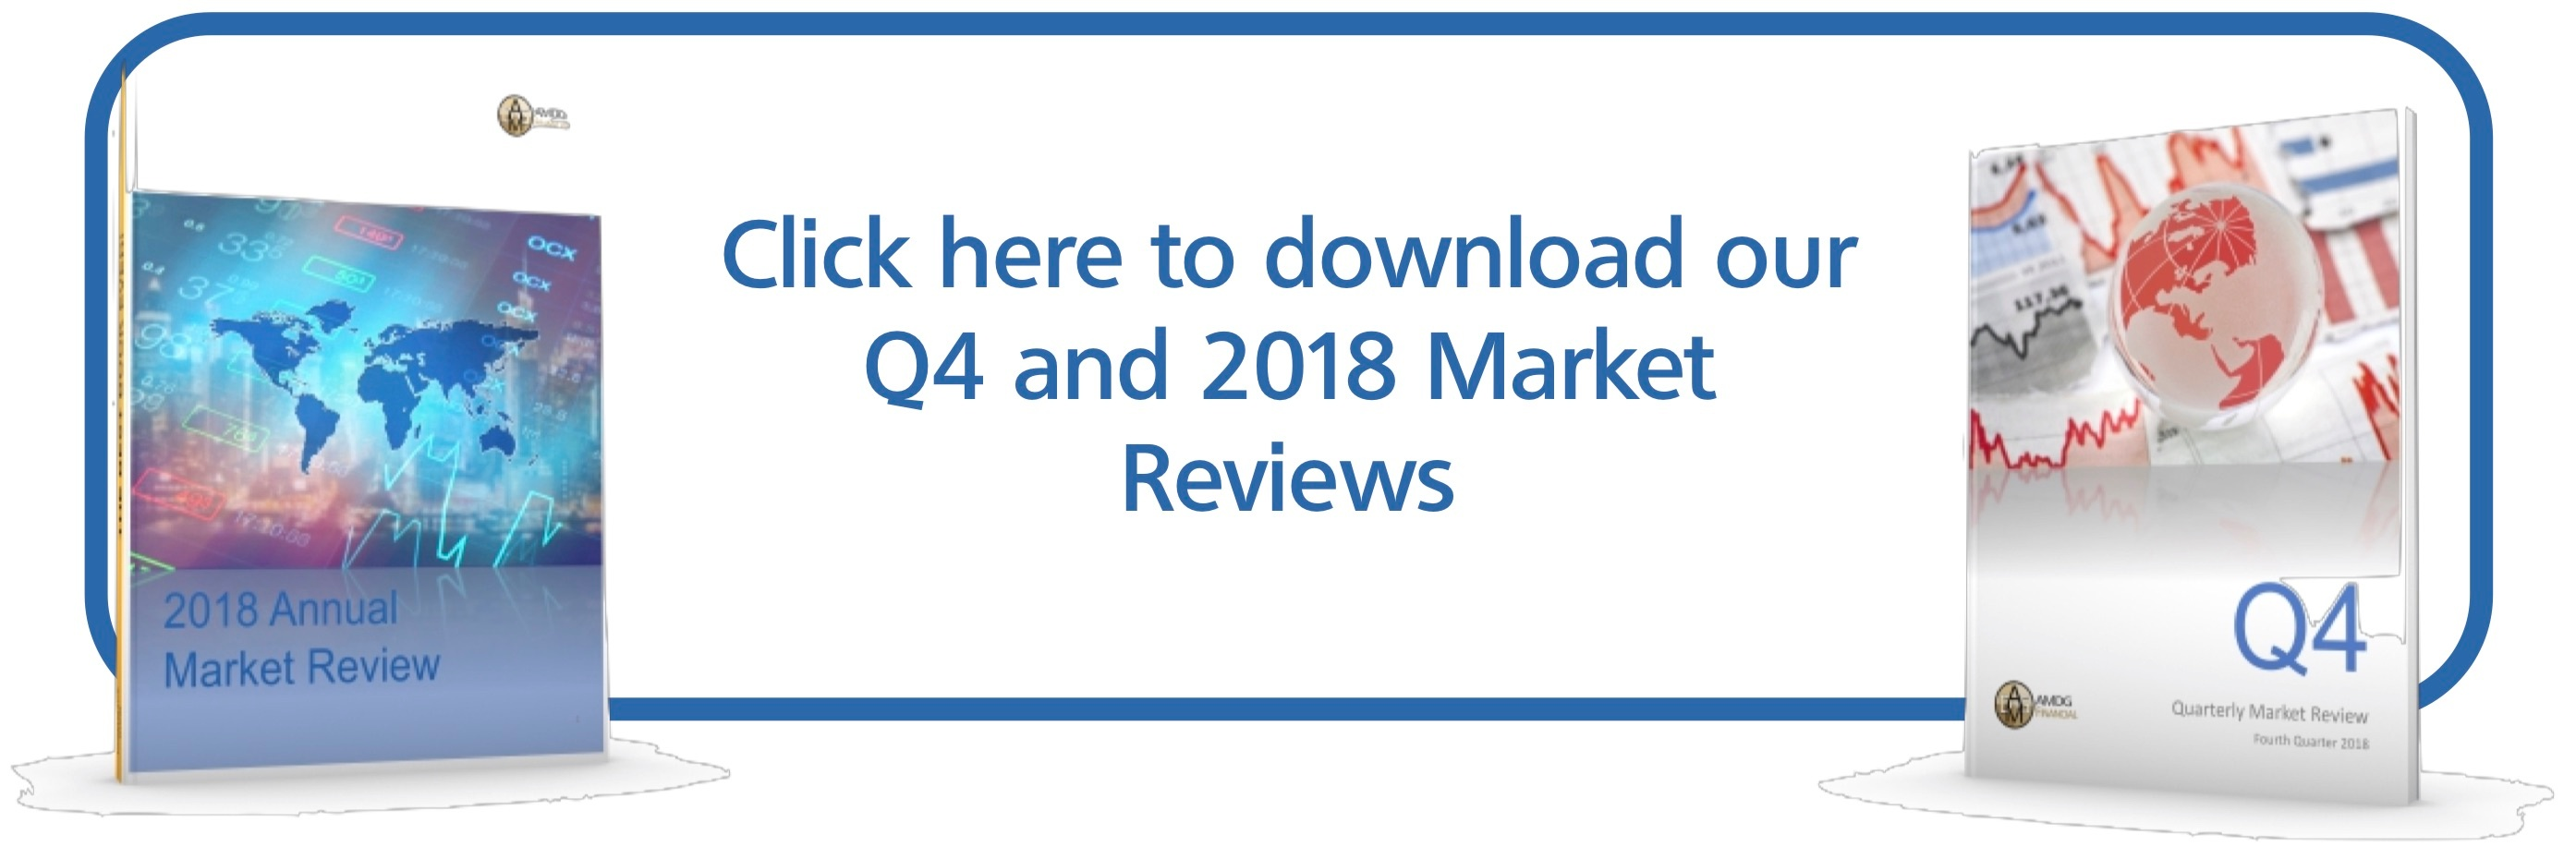 Download our Q4 and 2018 Market Reviews